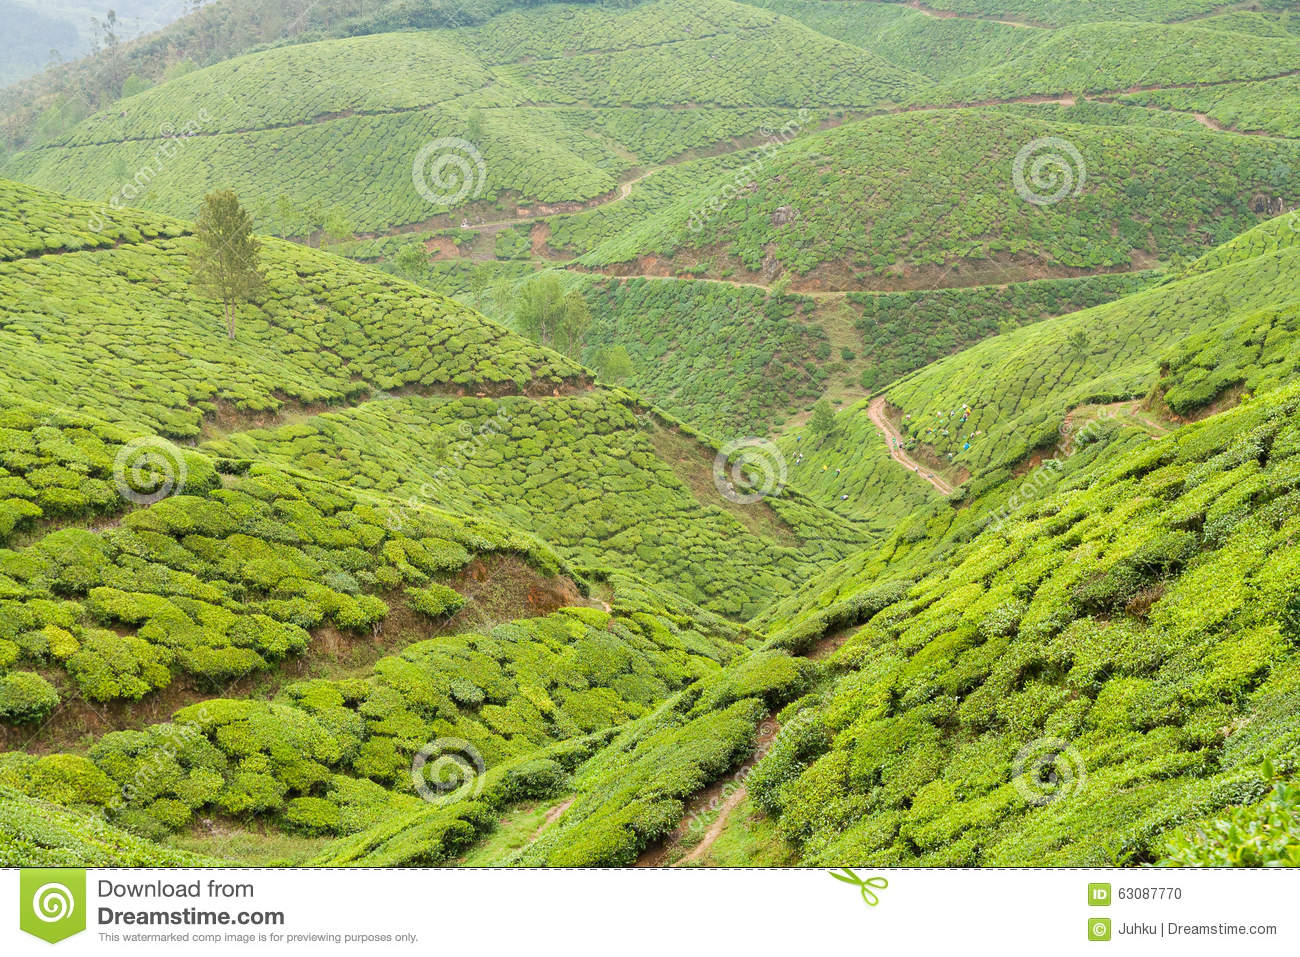 Download Inde Munnar De Plantations De Thé Photo stock - Image du organique, montagne: 63087770